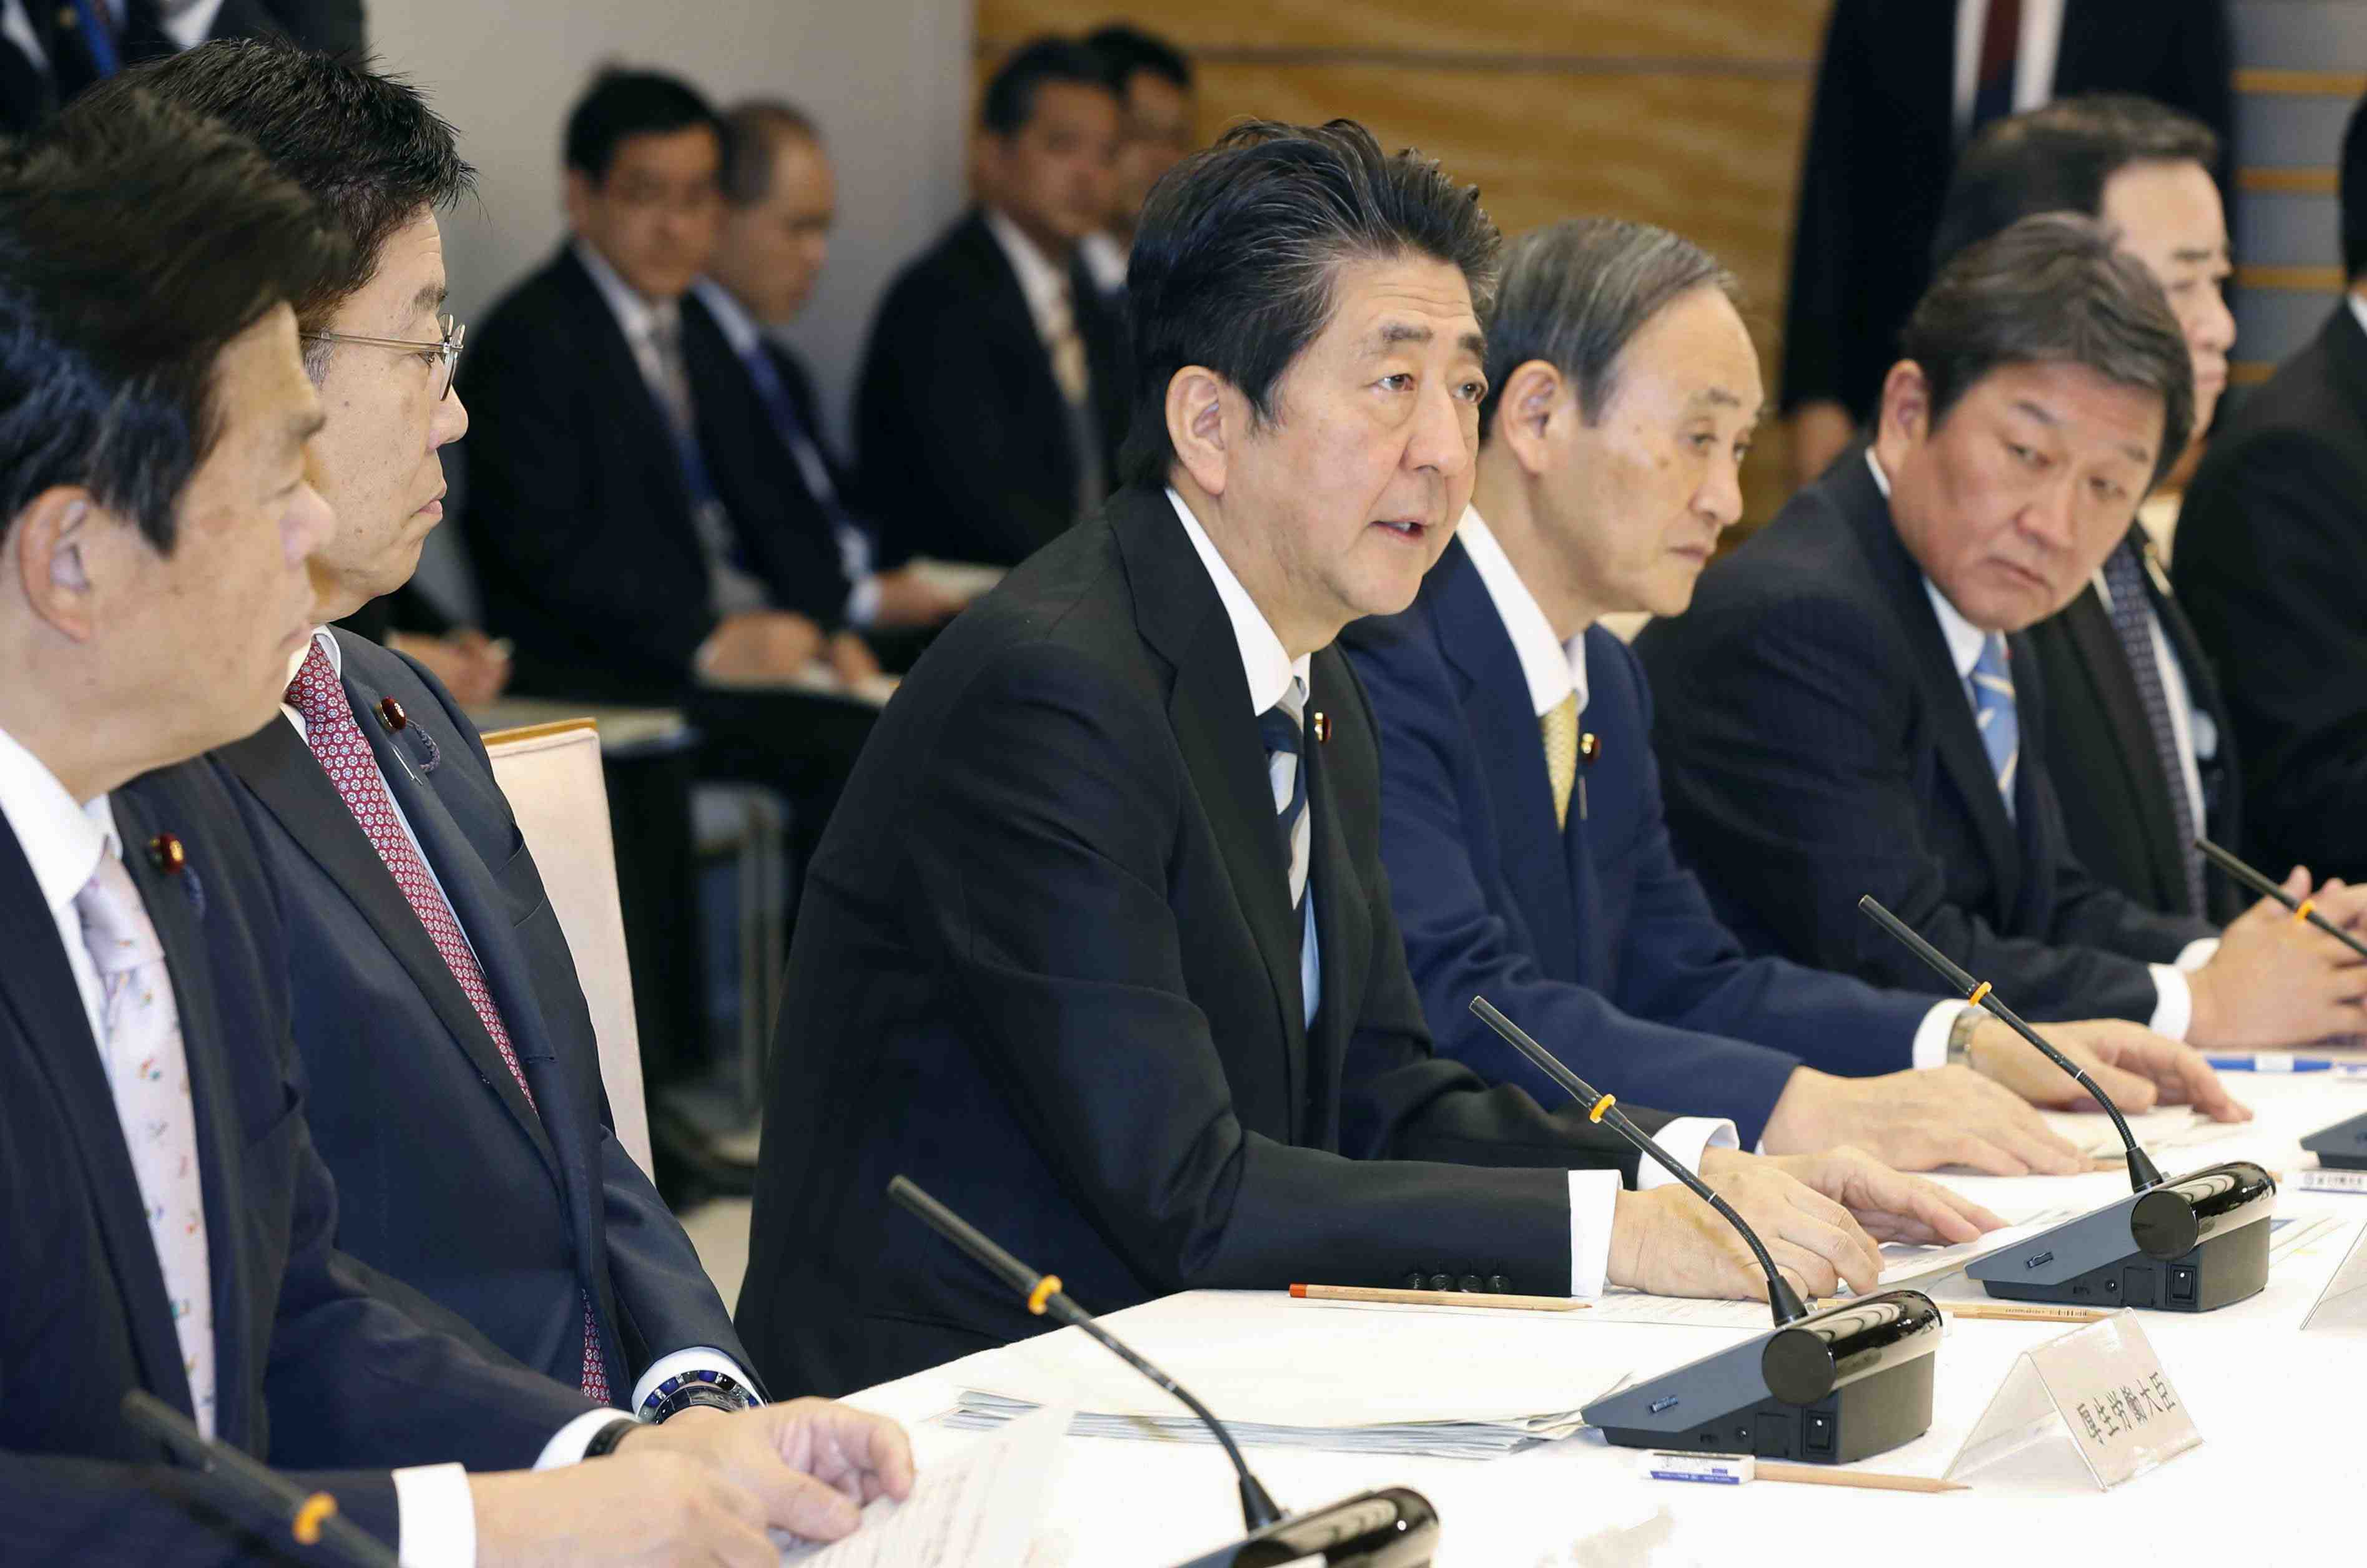 Japan Prime Minister Shinzo Abe and World Leaders 009